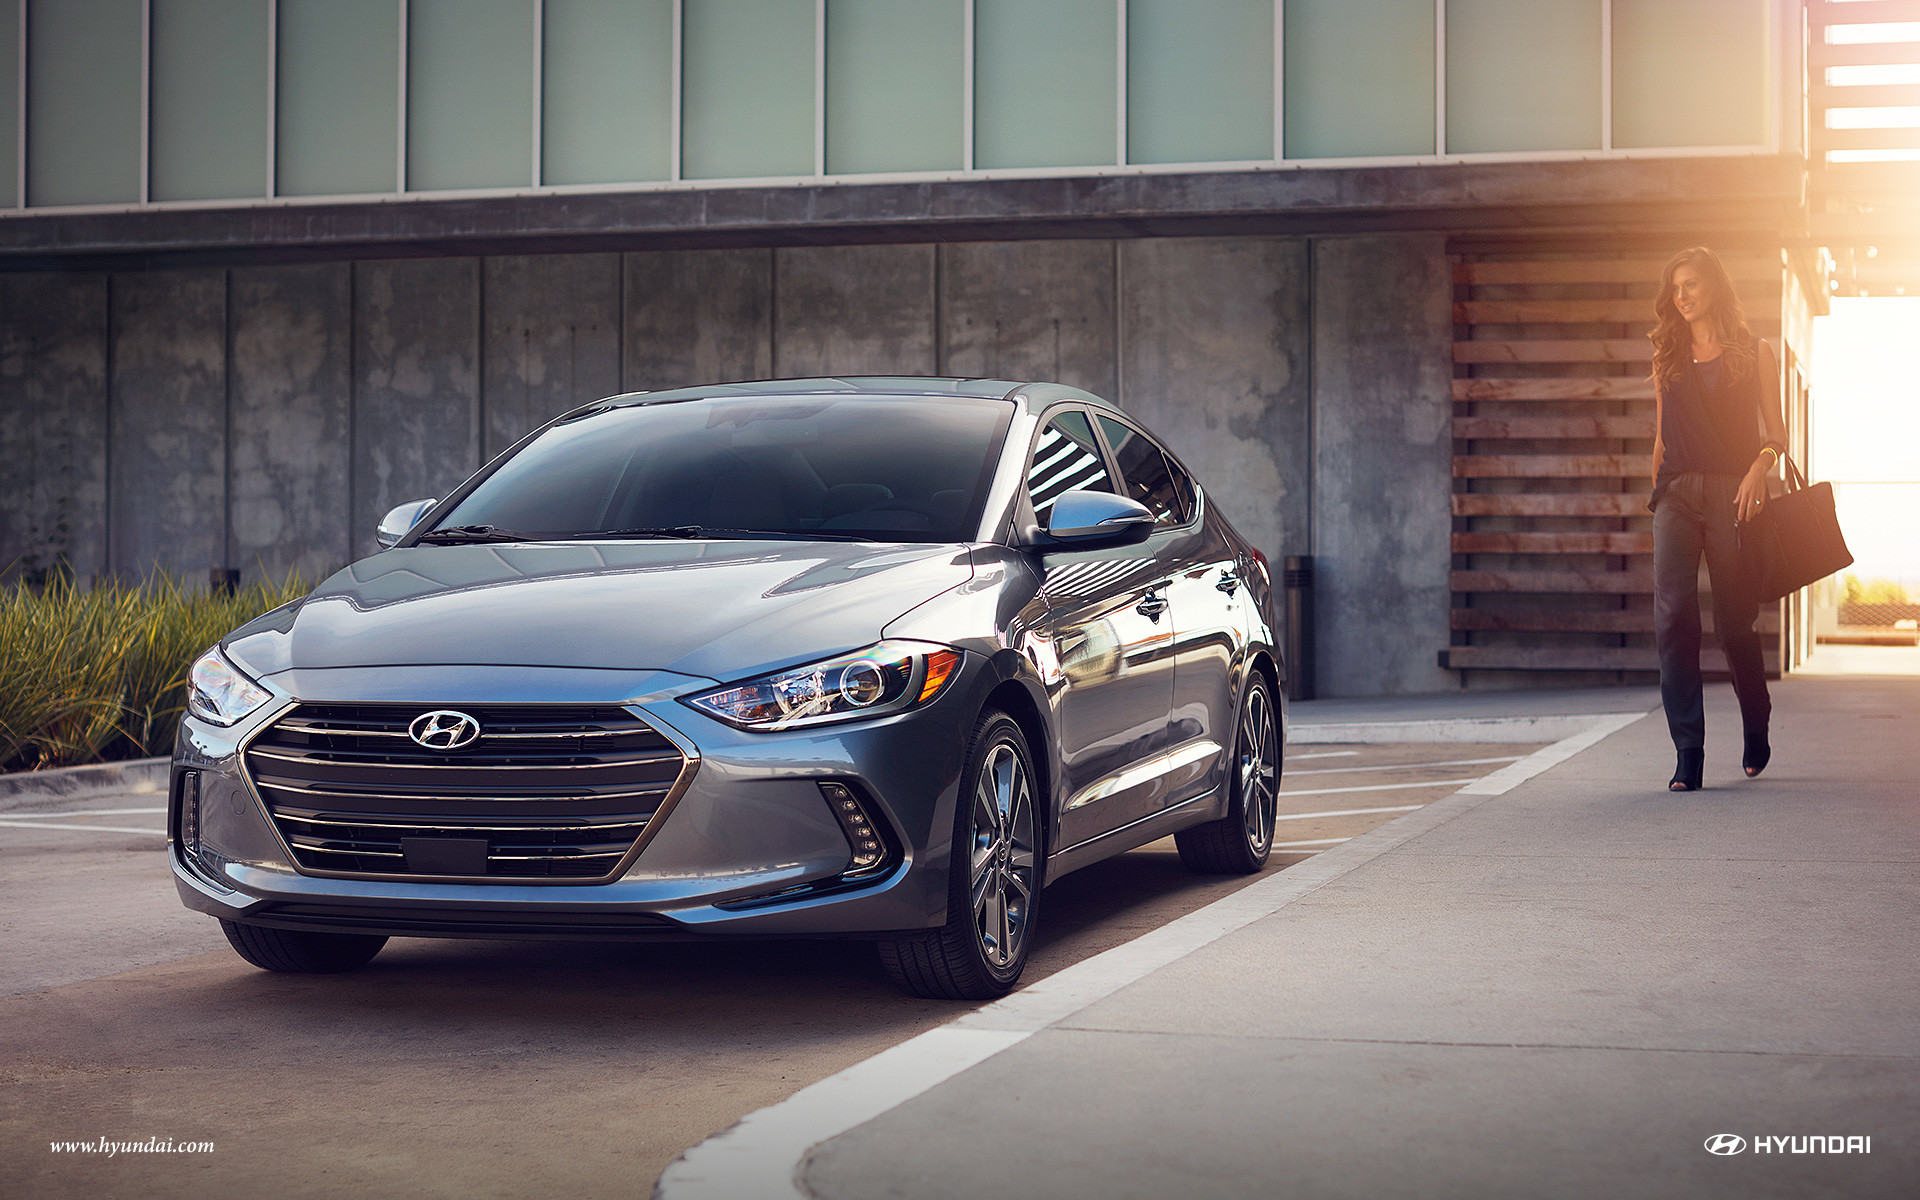 2016 Hyundai Elantra vs 2016 Dodge Dart near Fairfax, VA